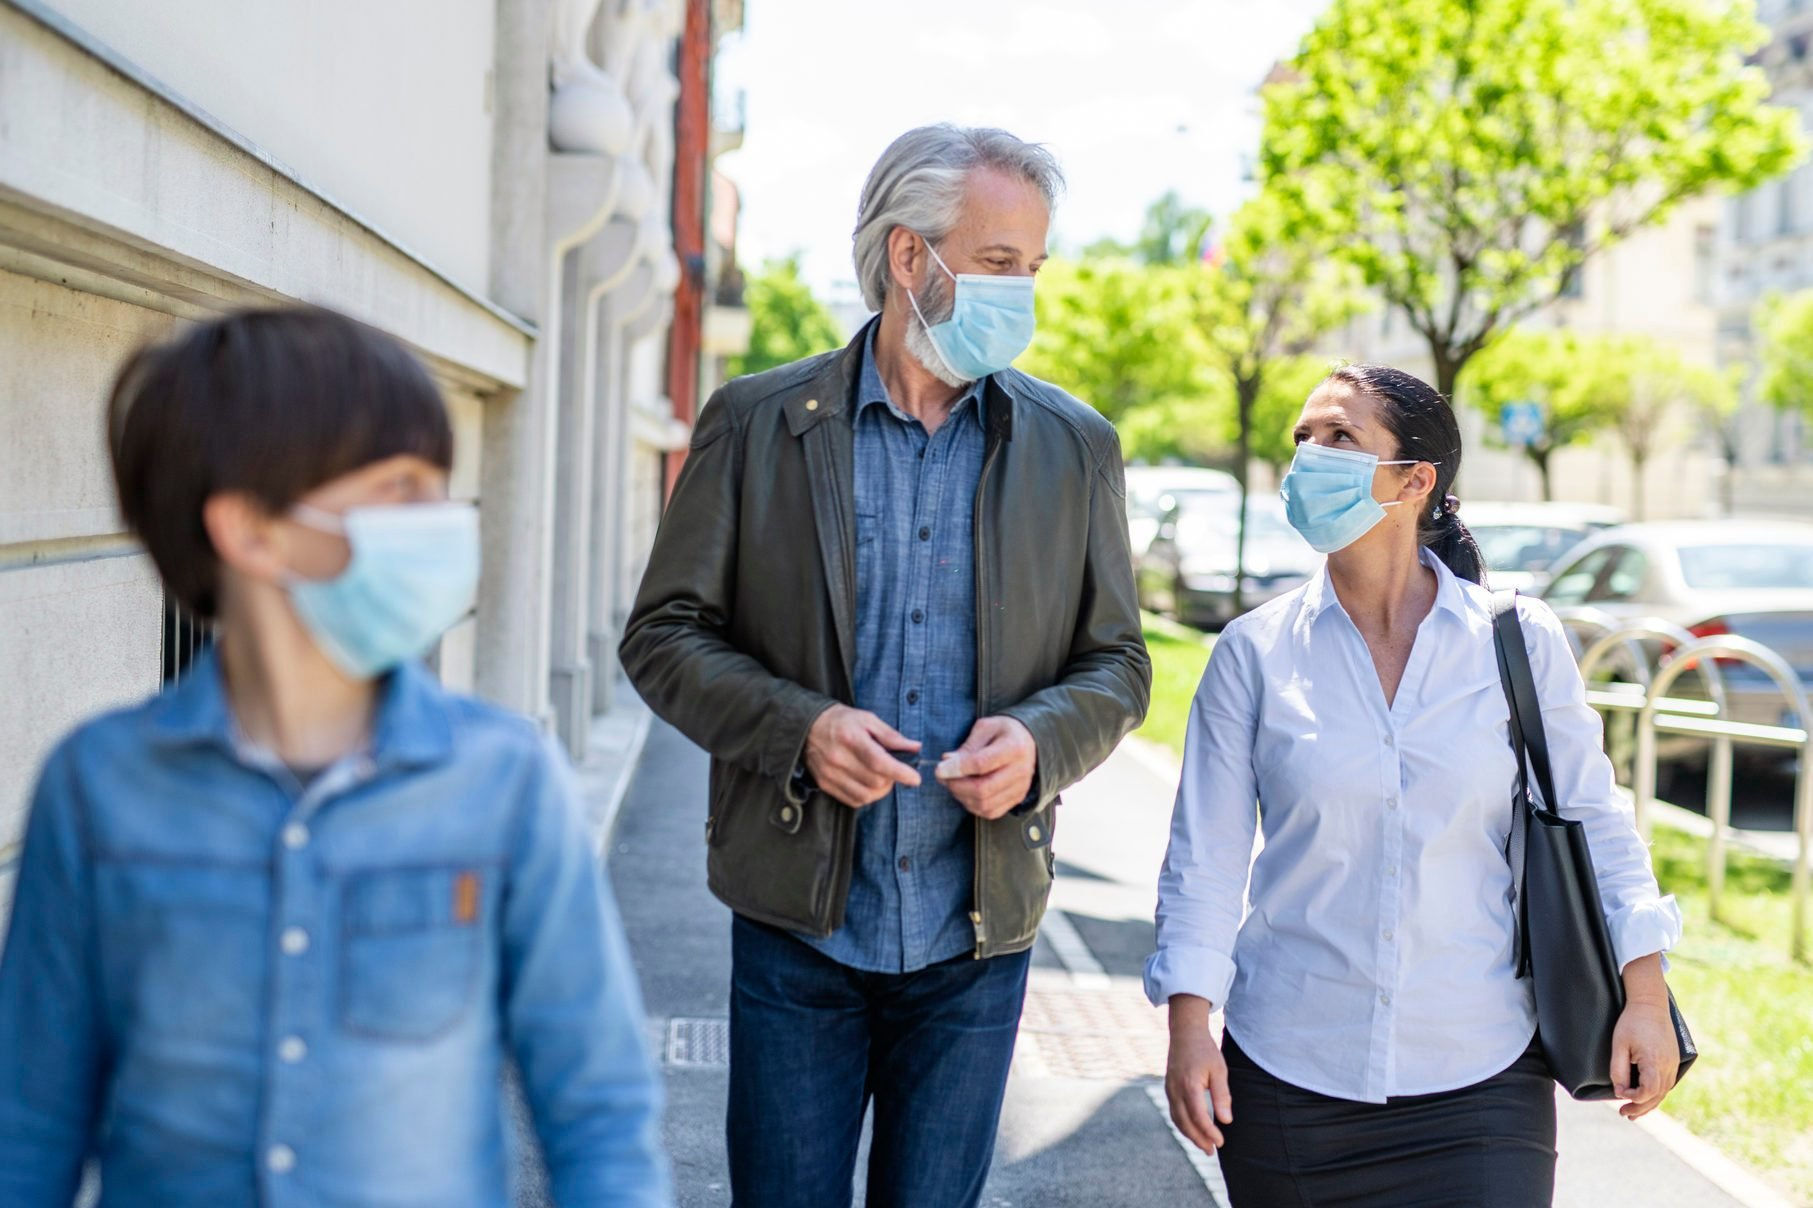 Family of Three Wearing Masks Outdoors During 2020 Pandemic